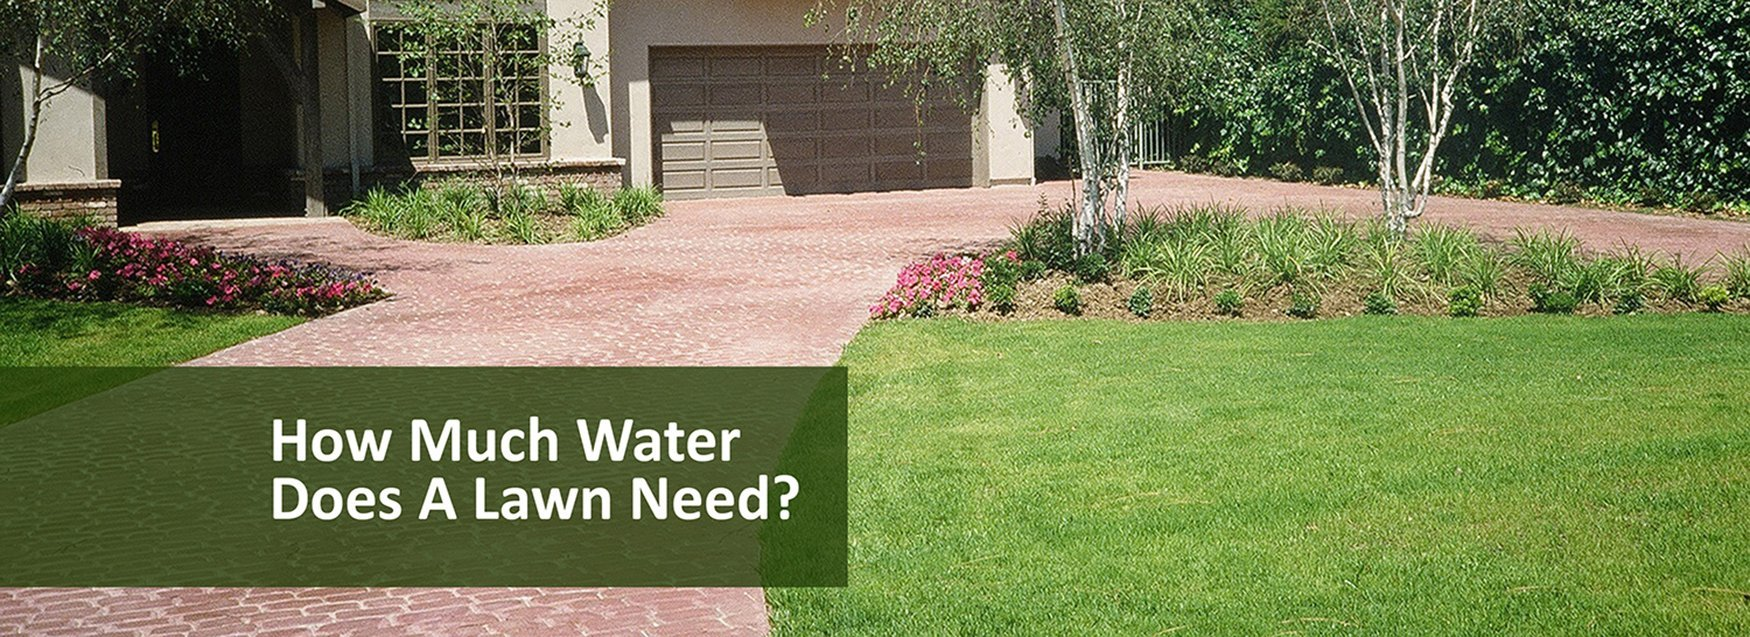 How much water does a lawn need?